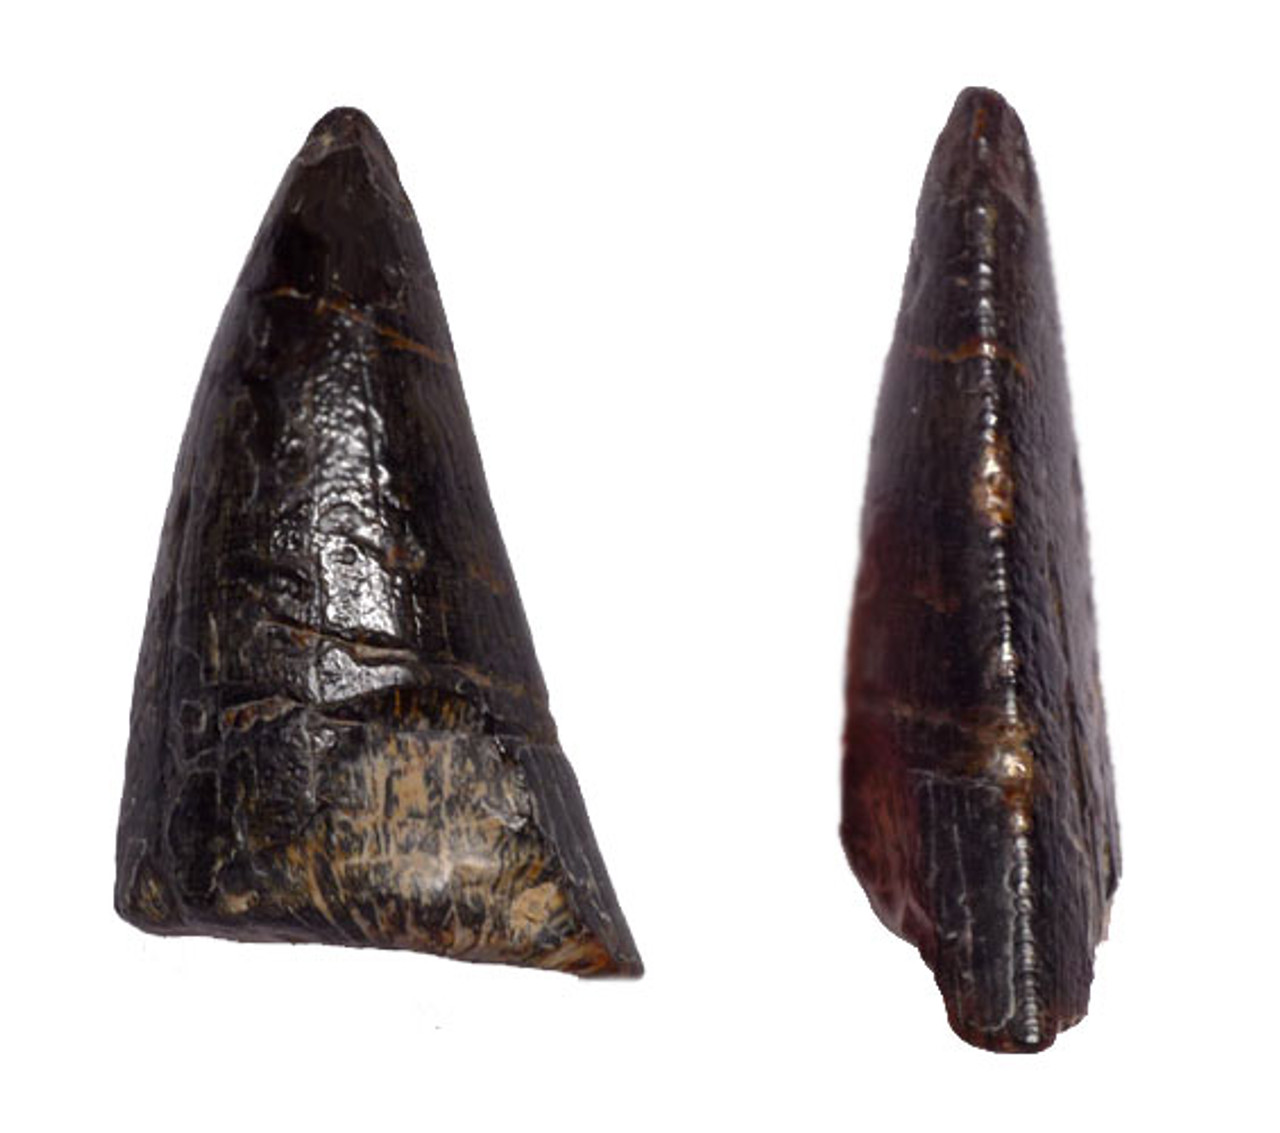 DTX001 - INCREDIBLY RARE EOCARCHARIA THEROPOD DINOSAUR TOOTH FROM NIGER